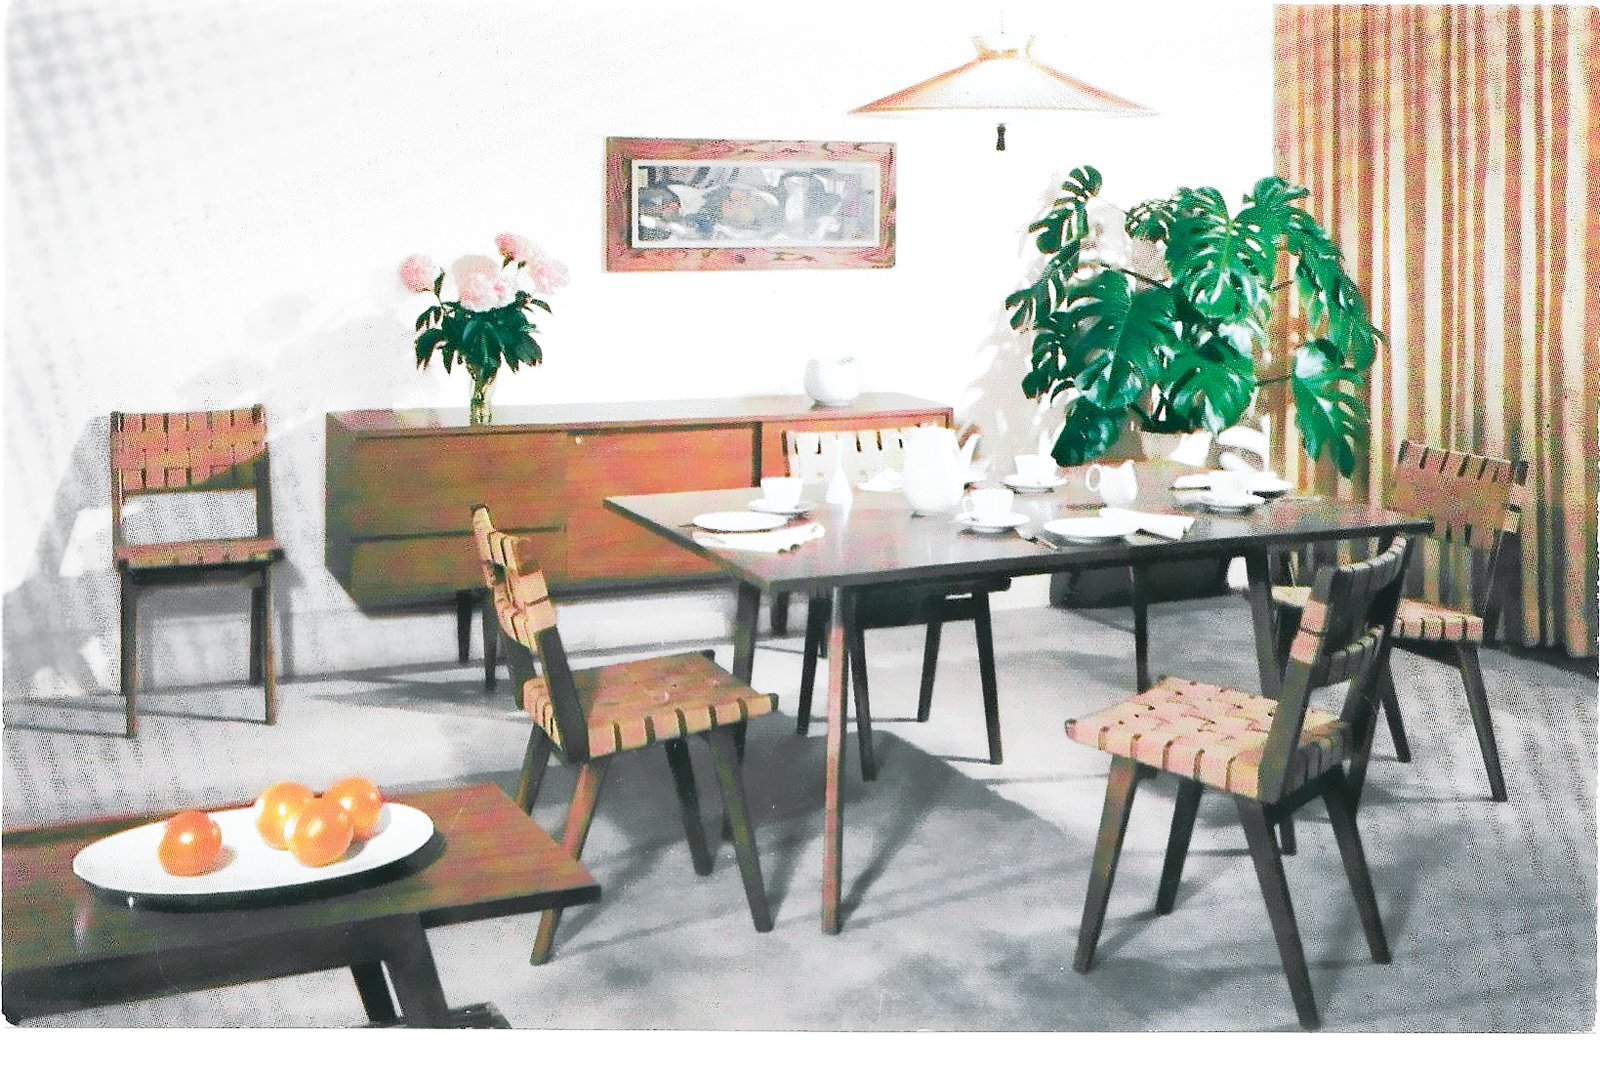 Shot in 1968 at the Smilow-Thielle store in Manhasset, New York, a dining room vignette outfitted with decorations and housewares encouraged shoppers to feel at home. Photo courtesy of the Smilow Family.  Midcentury Homes by Dwell from Mid-Century Designer Focus: Mel Smilow